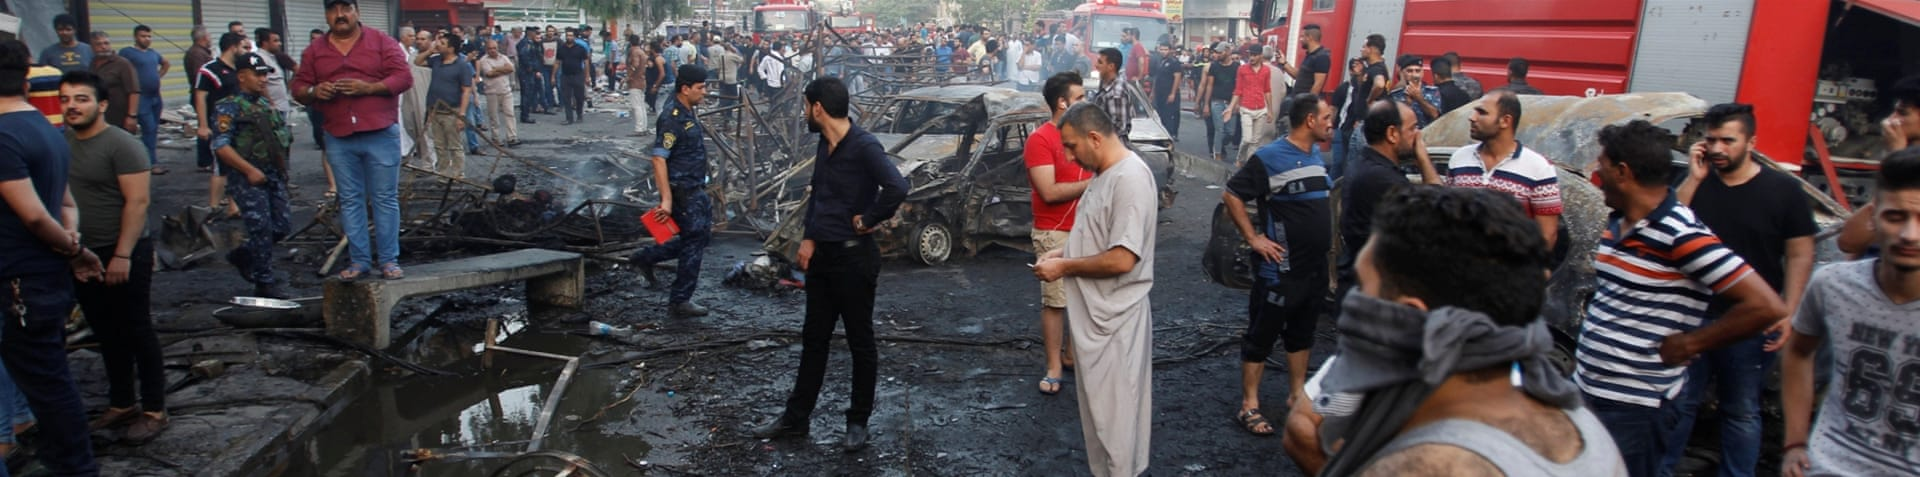 People gather at the site of a suicide car bomb in the Karada shopping area, in Baghdad [Khalid al Mousily/Reuters]